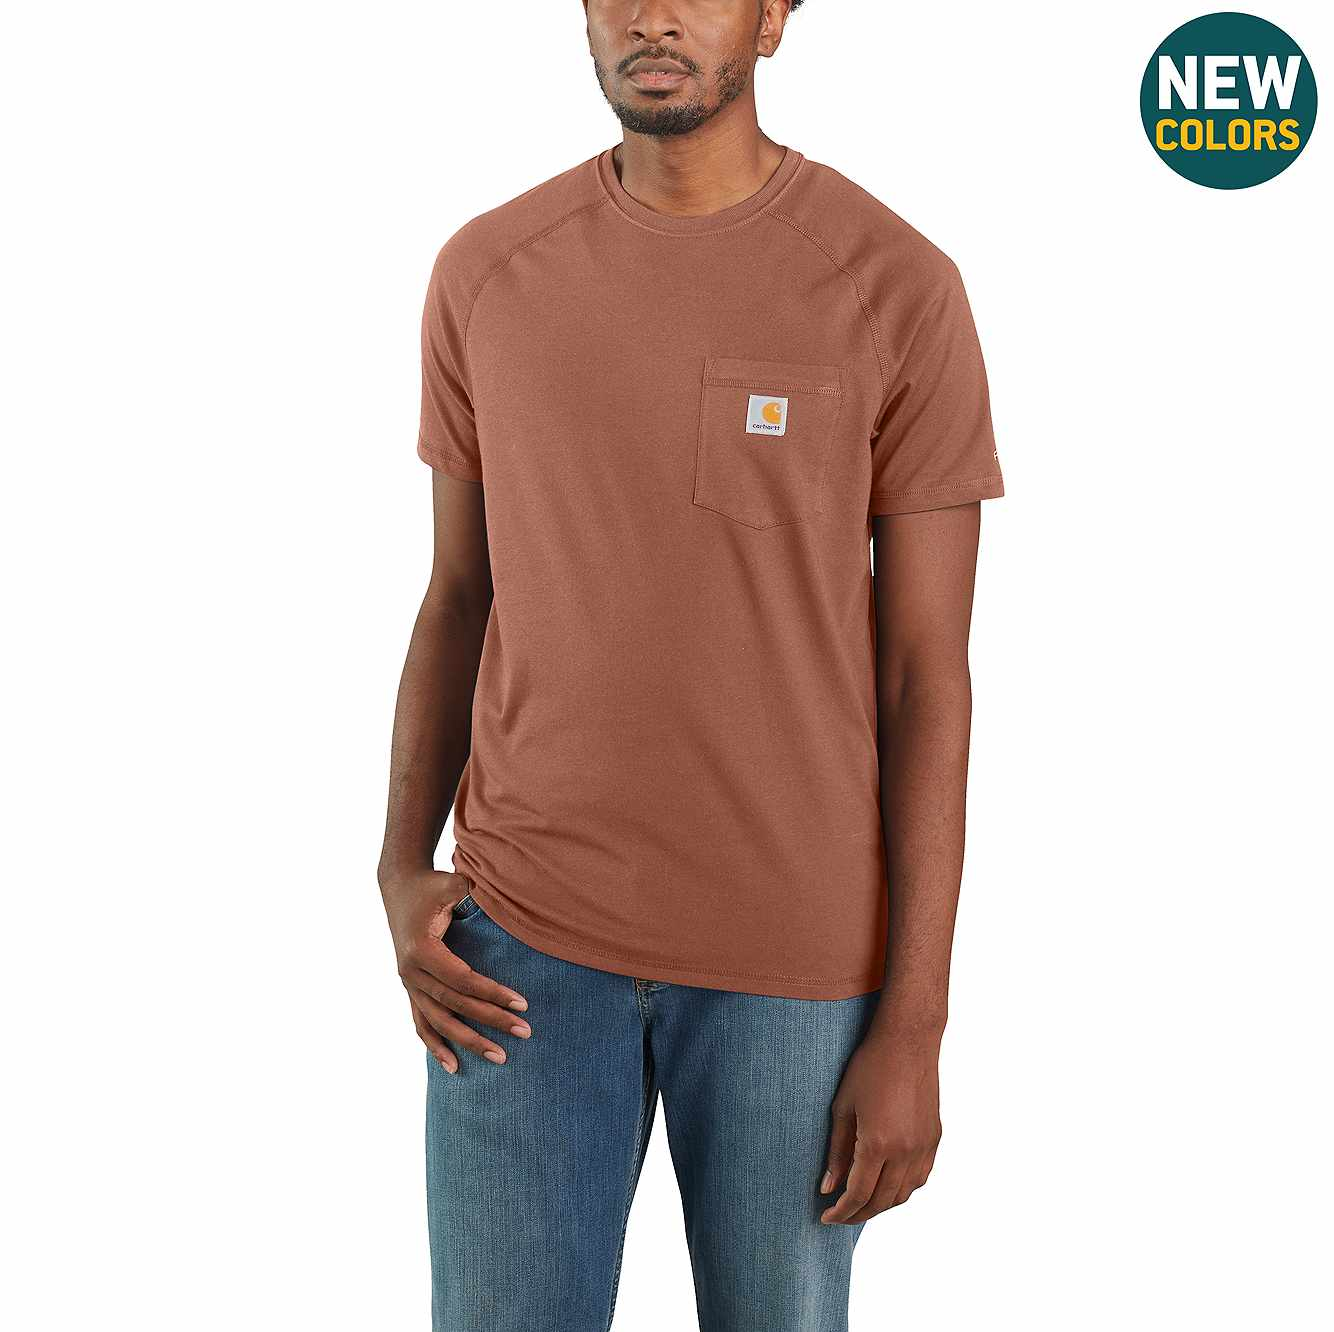 Picture of Carhartt Force® Cotton Delmont Short-Sleeve T-Shirt in Bronze